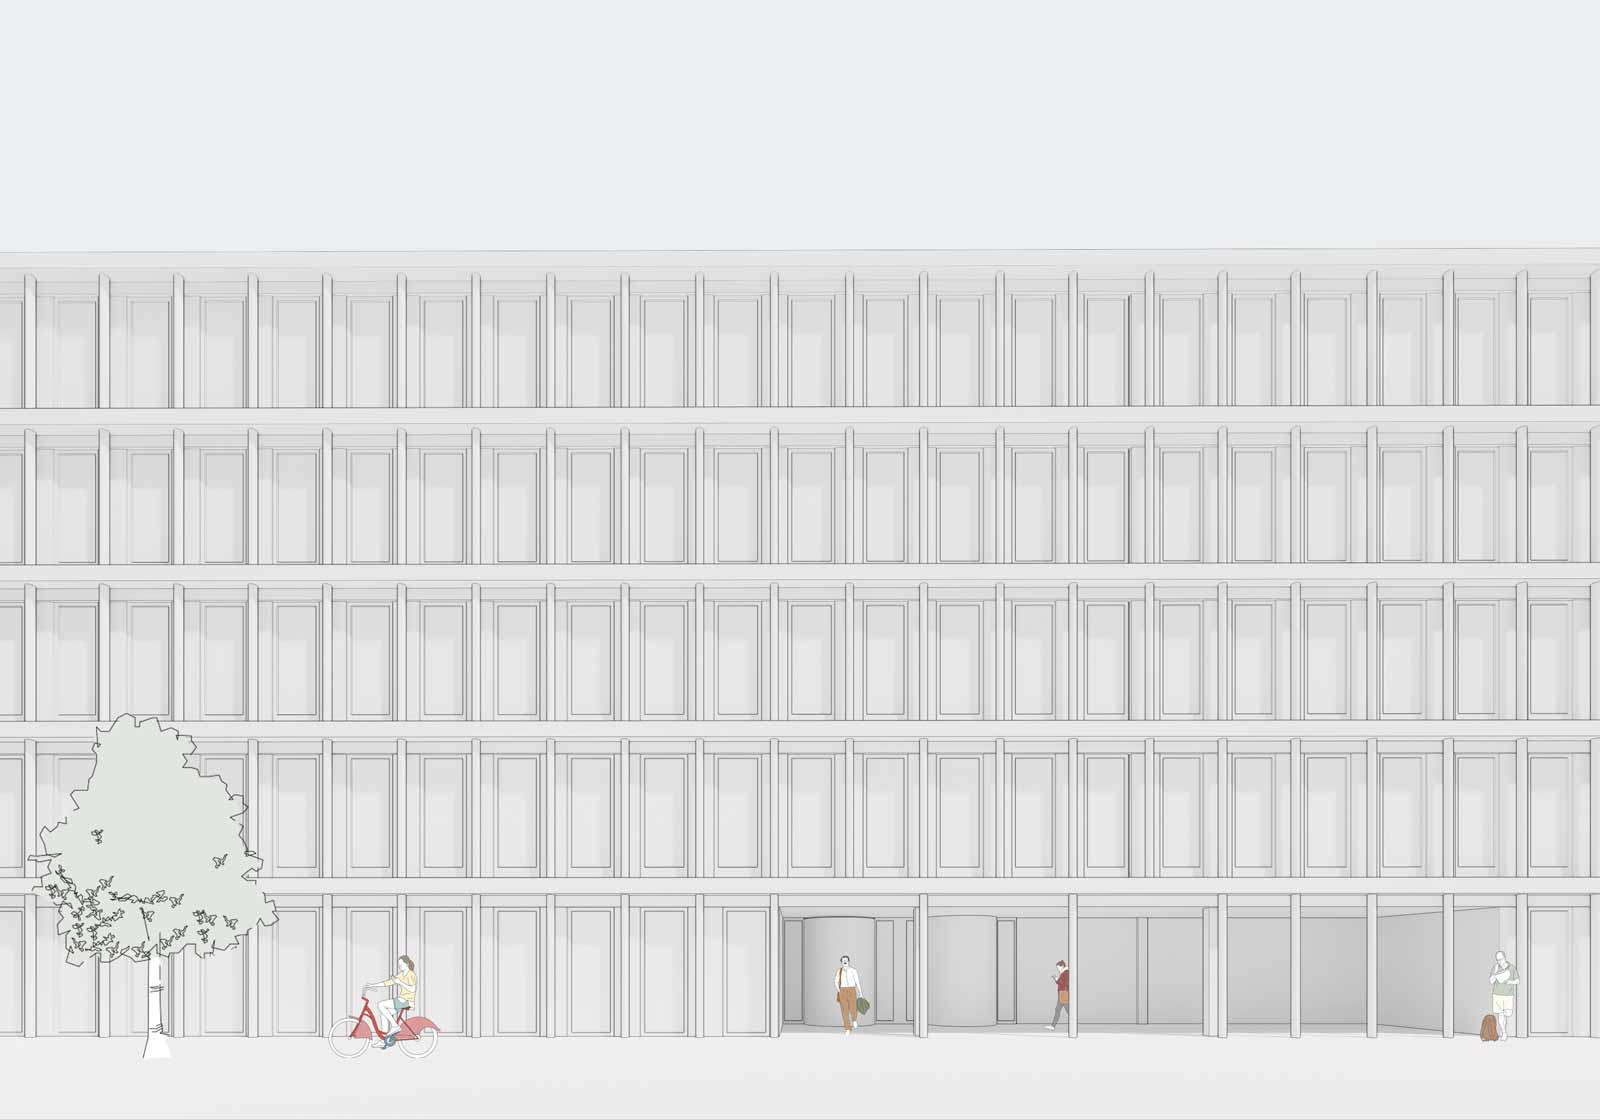 The regular, sculptural façade provides a calm appearance. Visualization: ATP